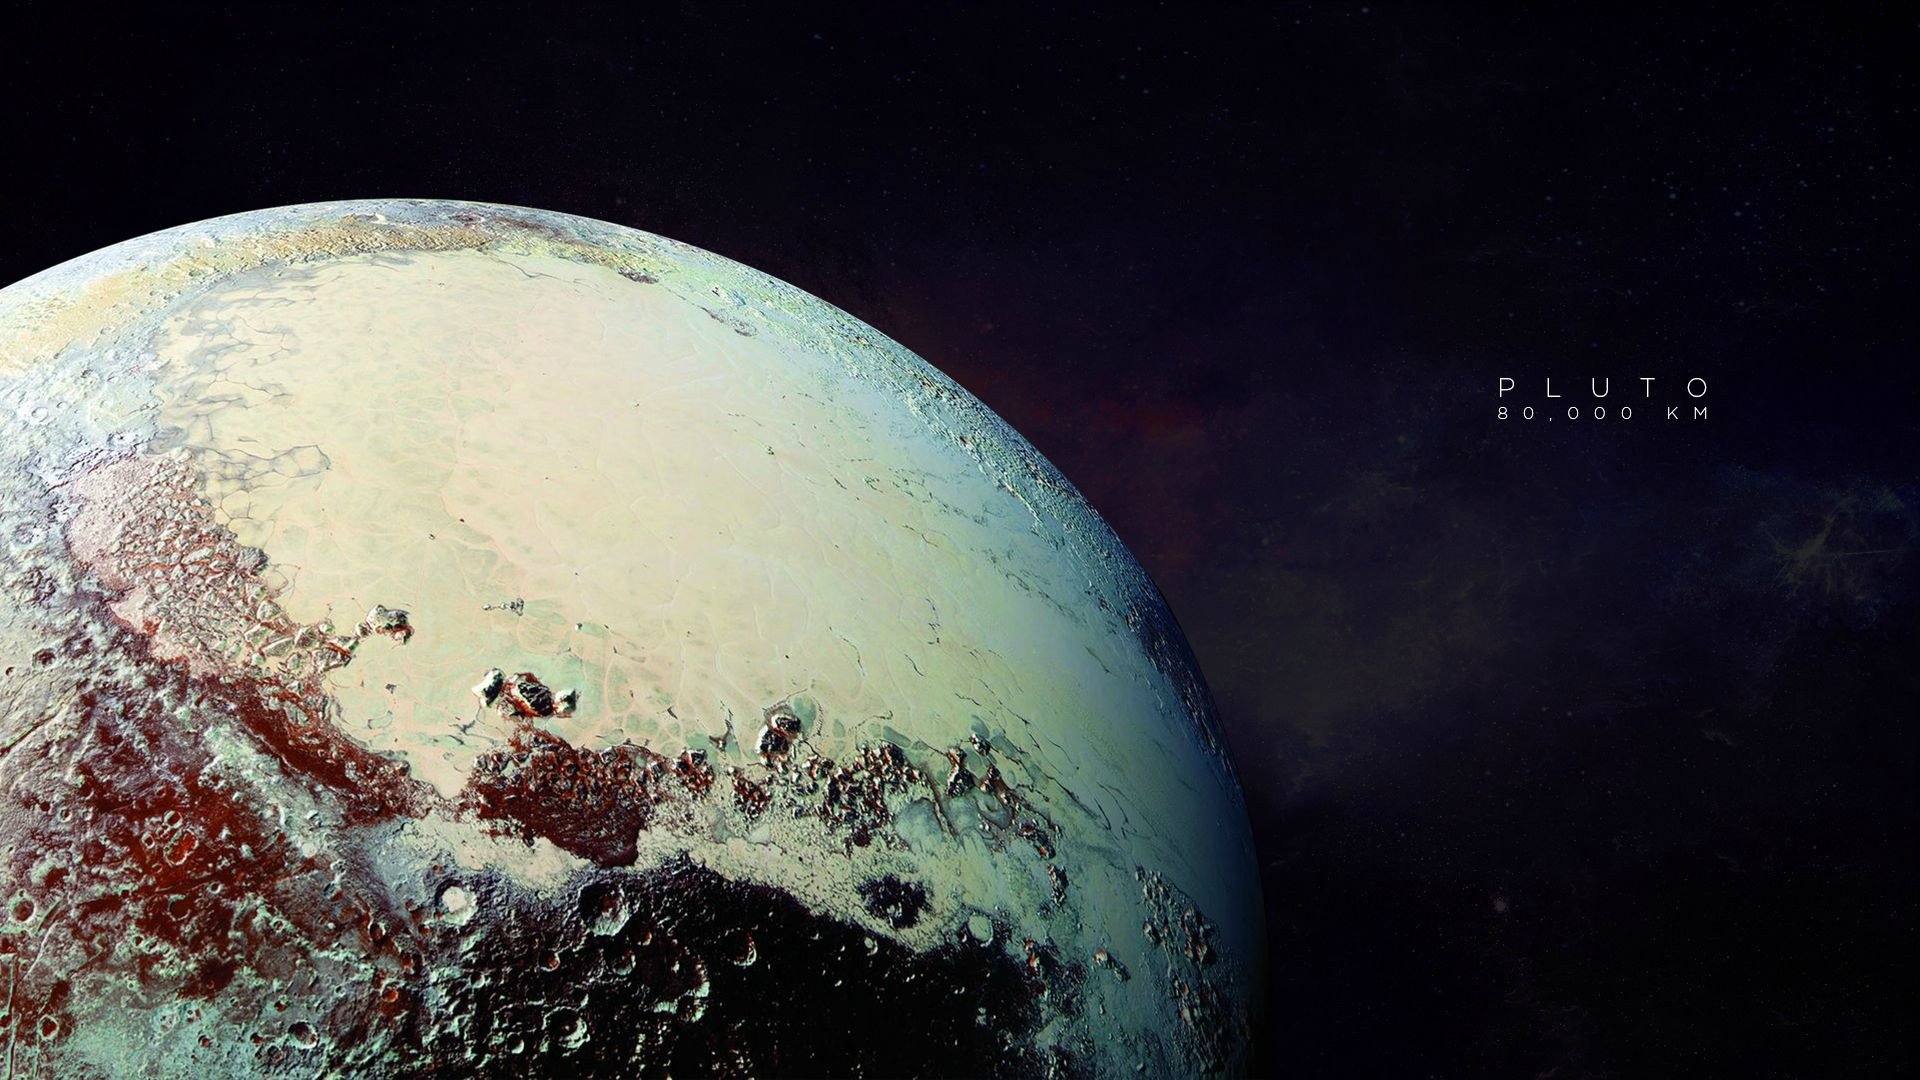 A-quick-for-our-new-Pluto-image-wallpaper-wp3402090